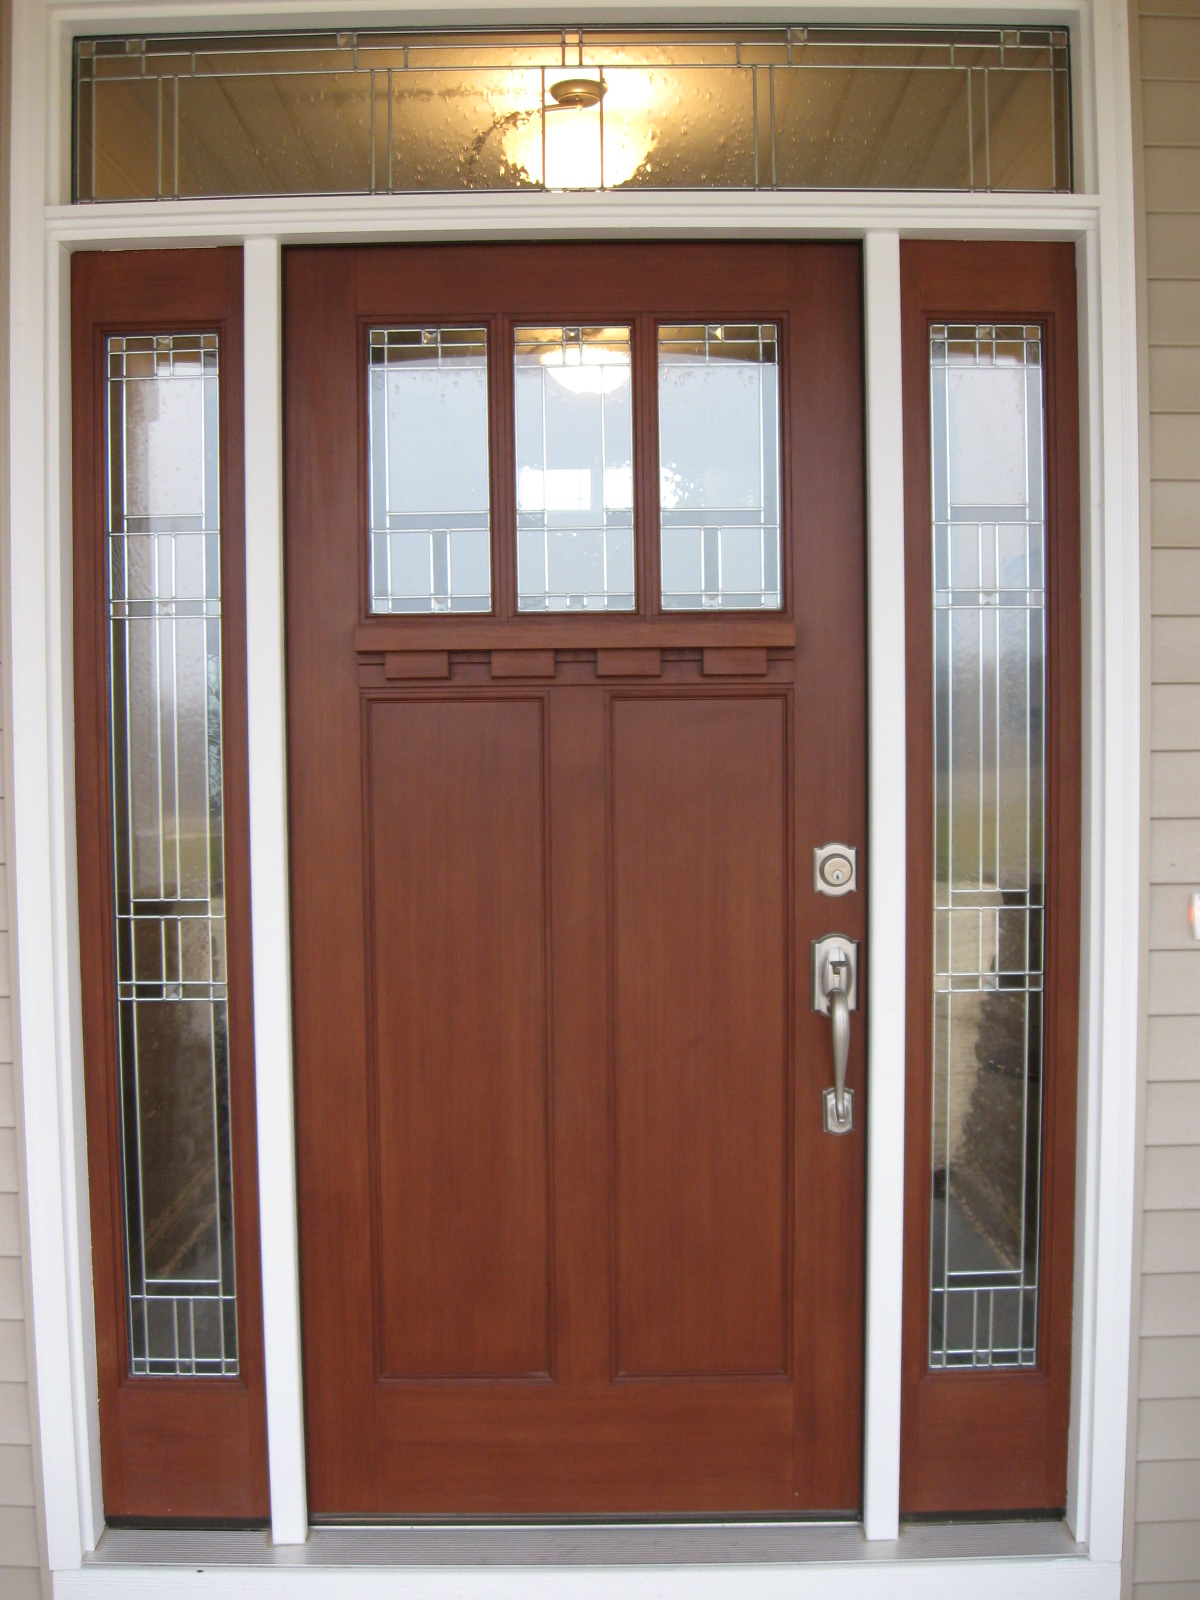 How to Install a Prehung Door Properly & How to Install a Prehung Door Properly in Your New Home- Armchair ...